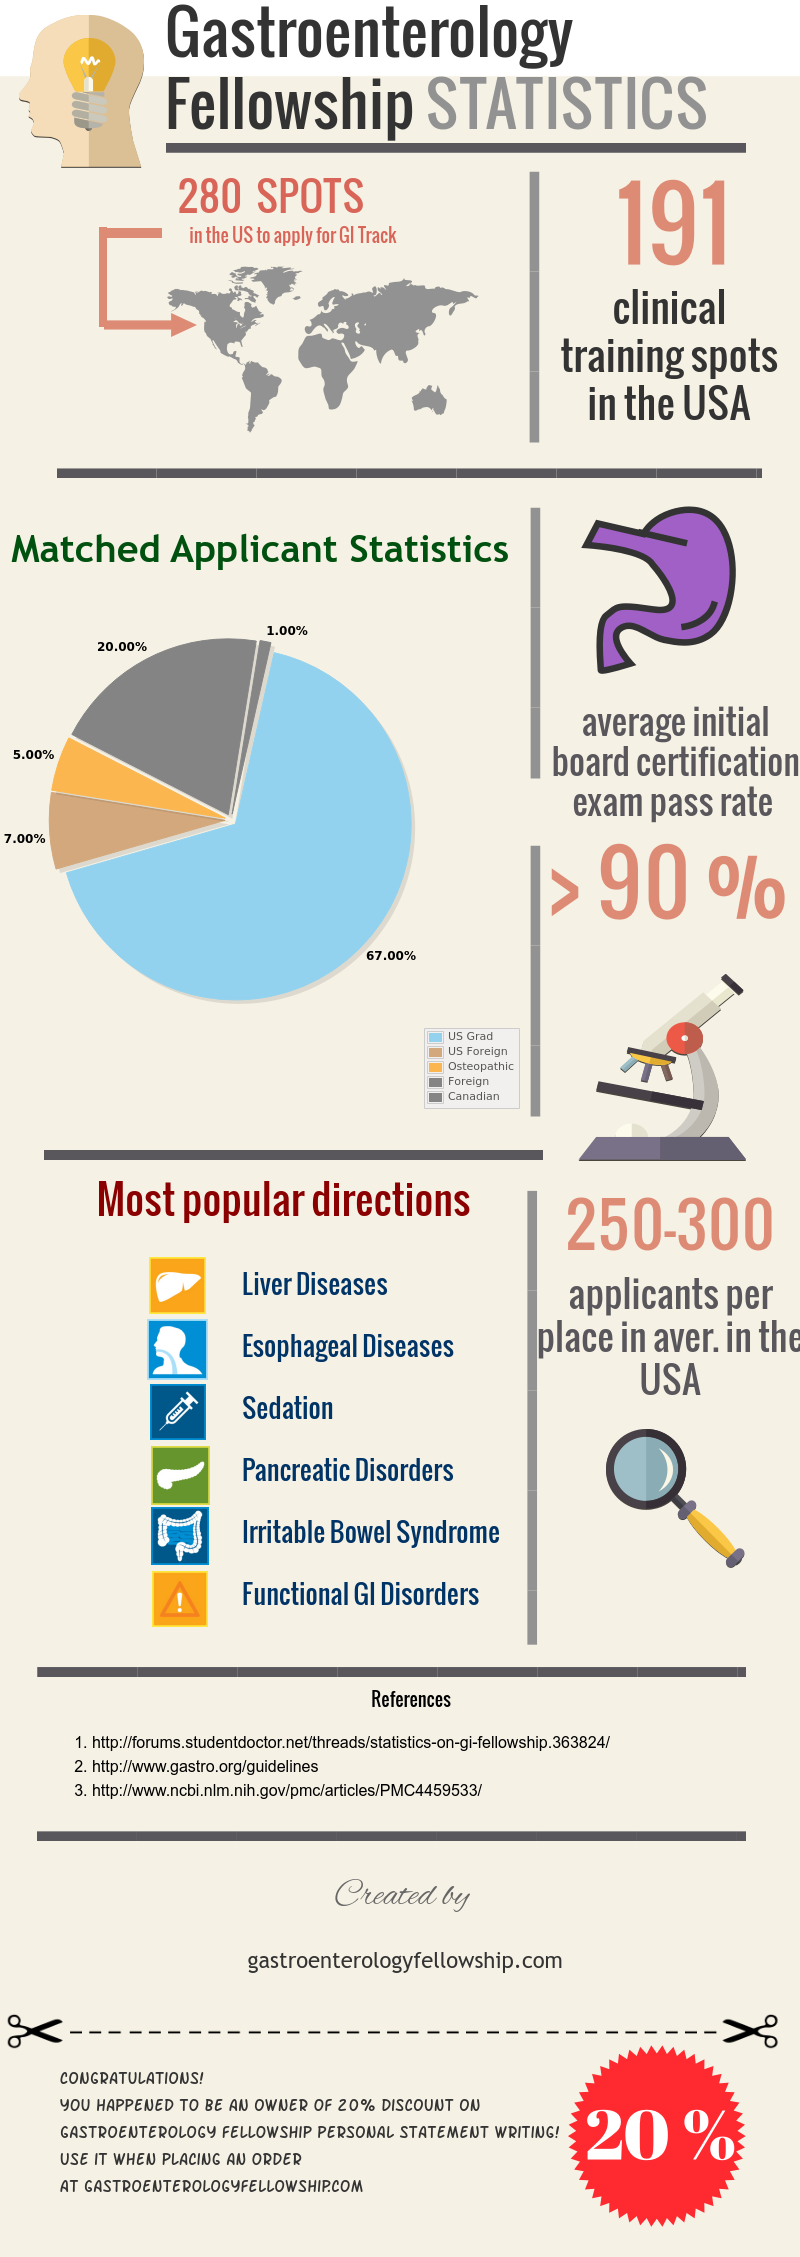 All of the help and tips that you need, about gastroenterology fellowship. http://www.gastroenterologyfellowship.com/gastroenterology-fellowship-infographics